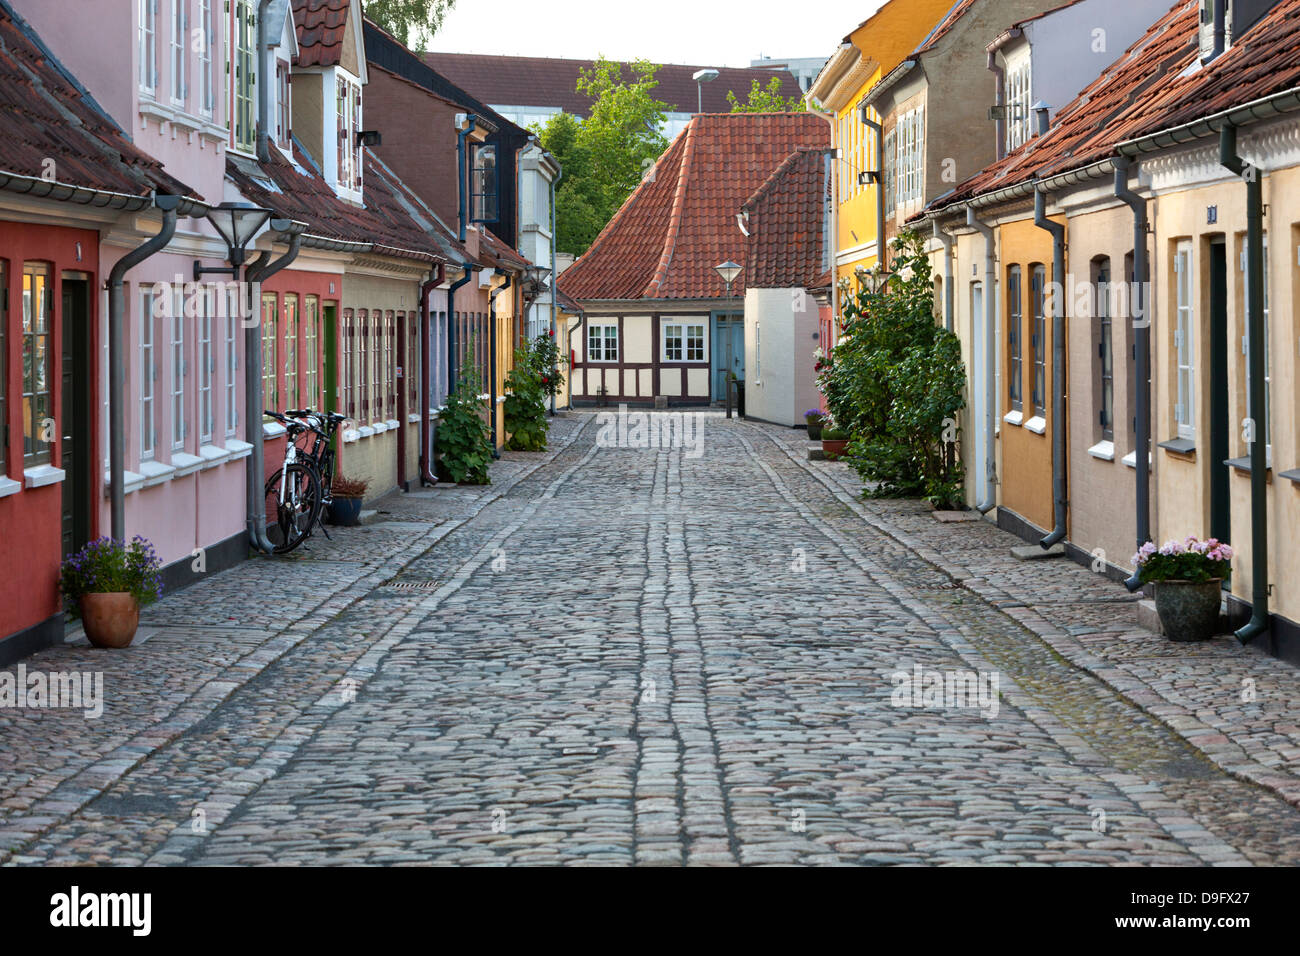 Cobblestone alley in the old poor quarter, City of Beggars, Odense, Funen, Denmark, Scandinavia Stock Photo